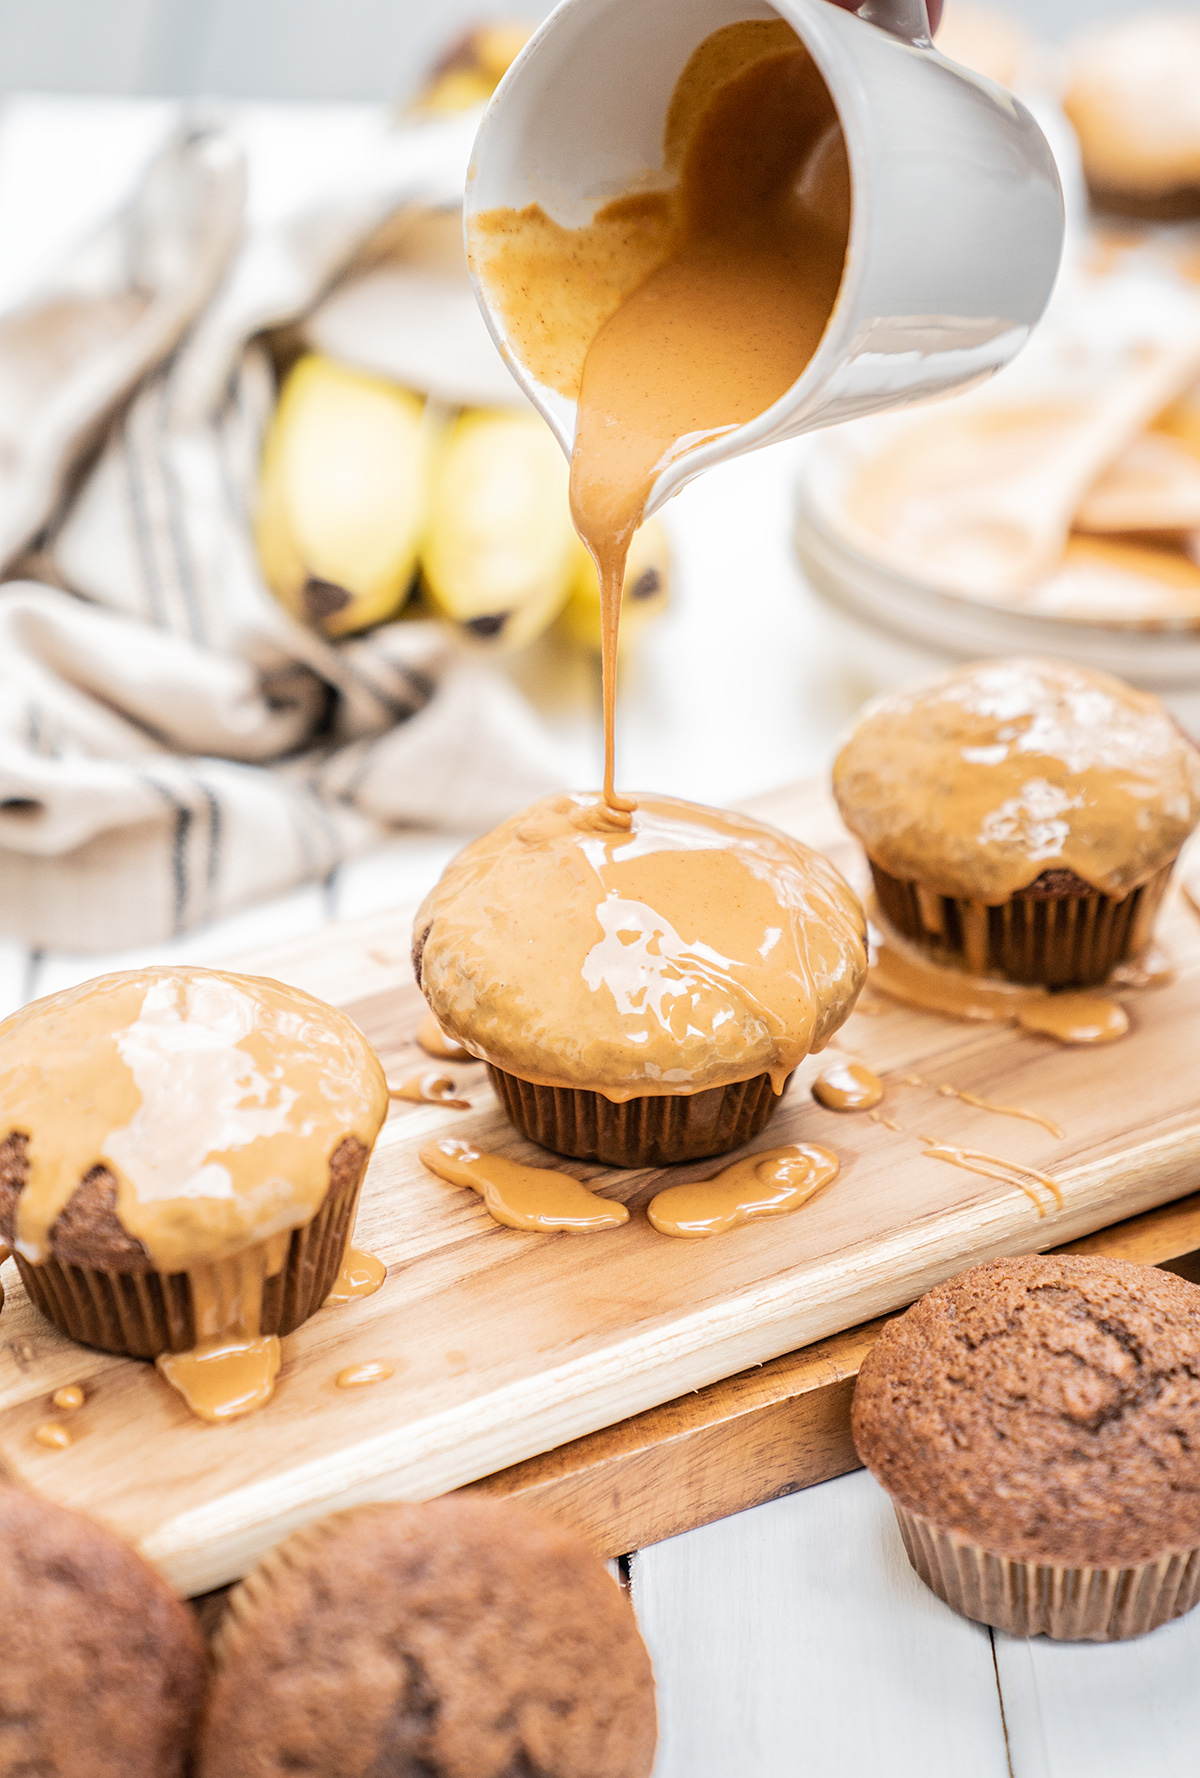 Peanut-Butter-Muffins-Chocolate-Banana